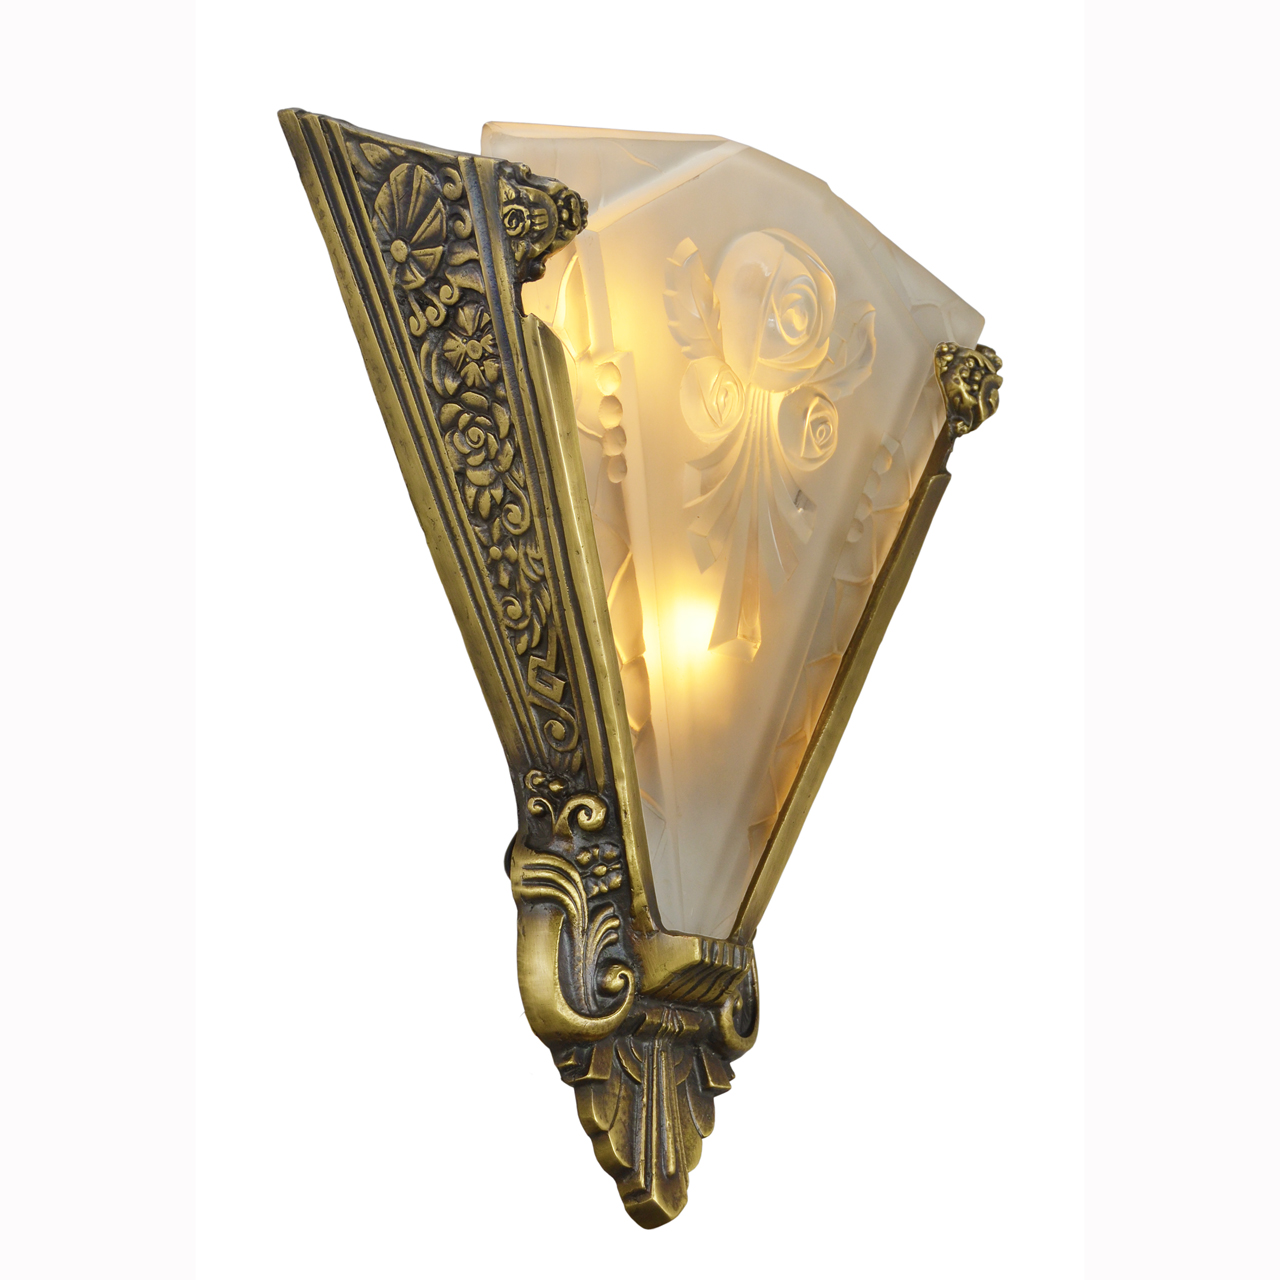 Pair of Large Wall Sconces Lighting with Antique French ... on Vintage Wall Sconces id=13037